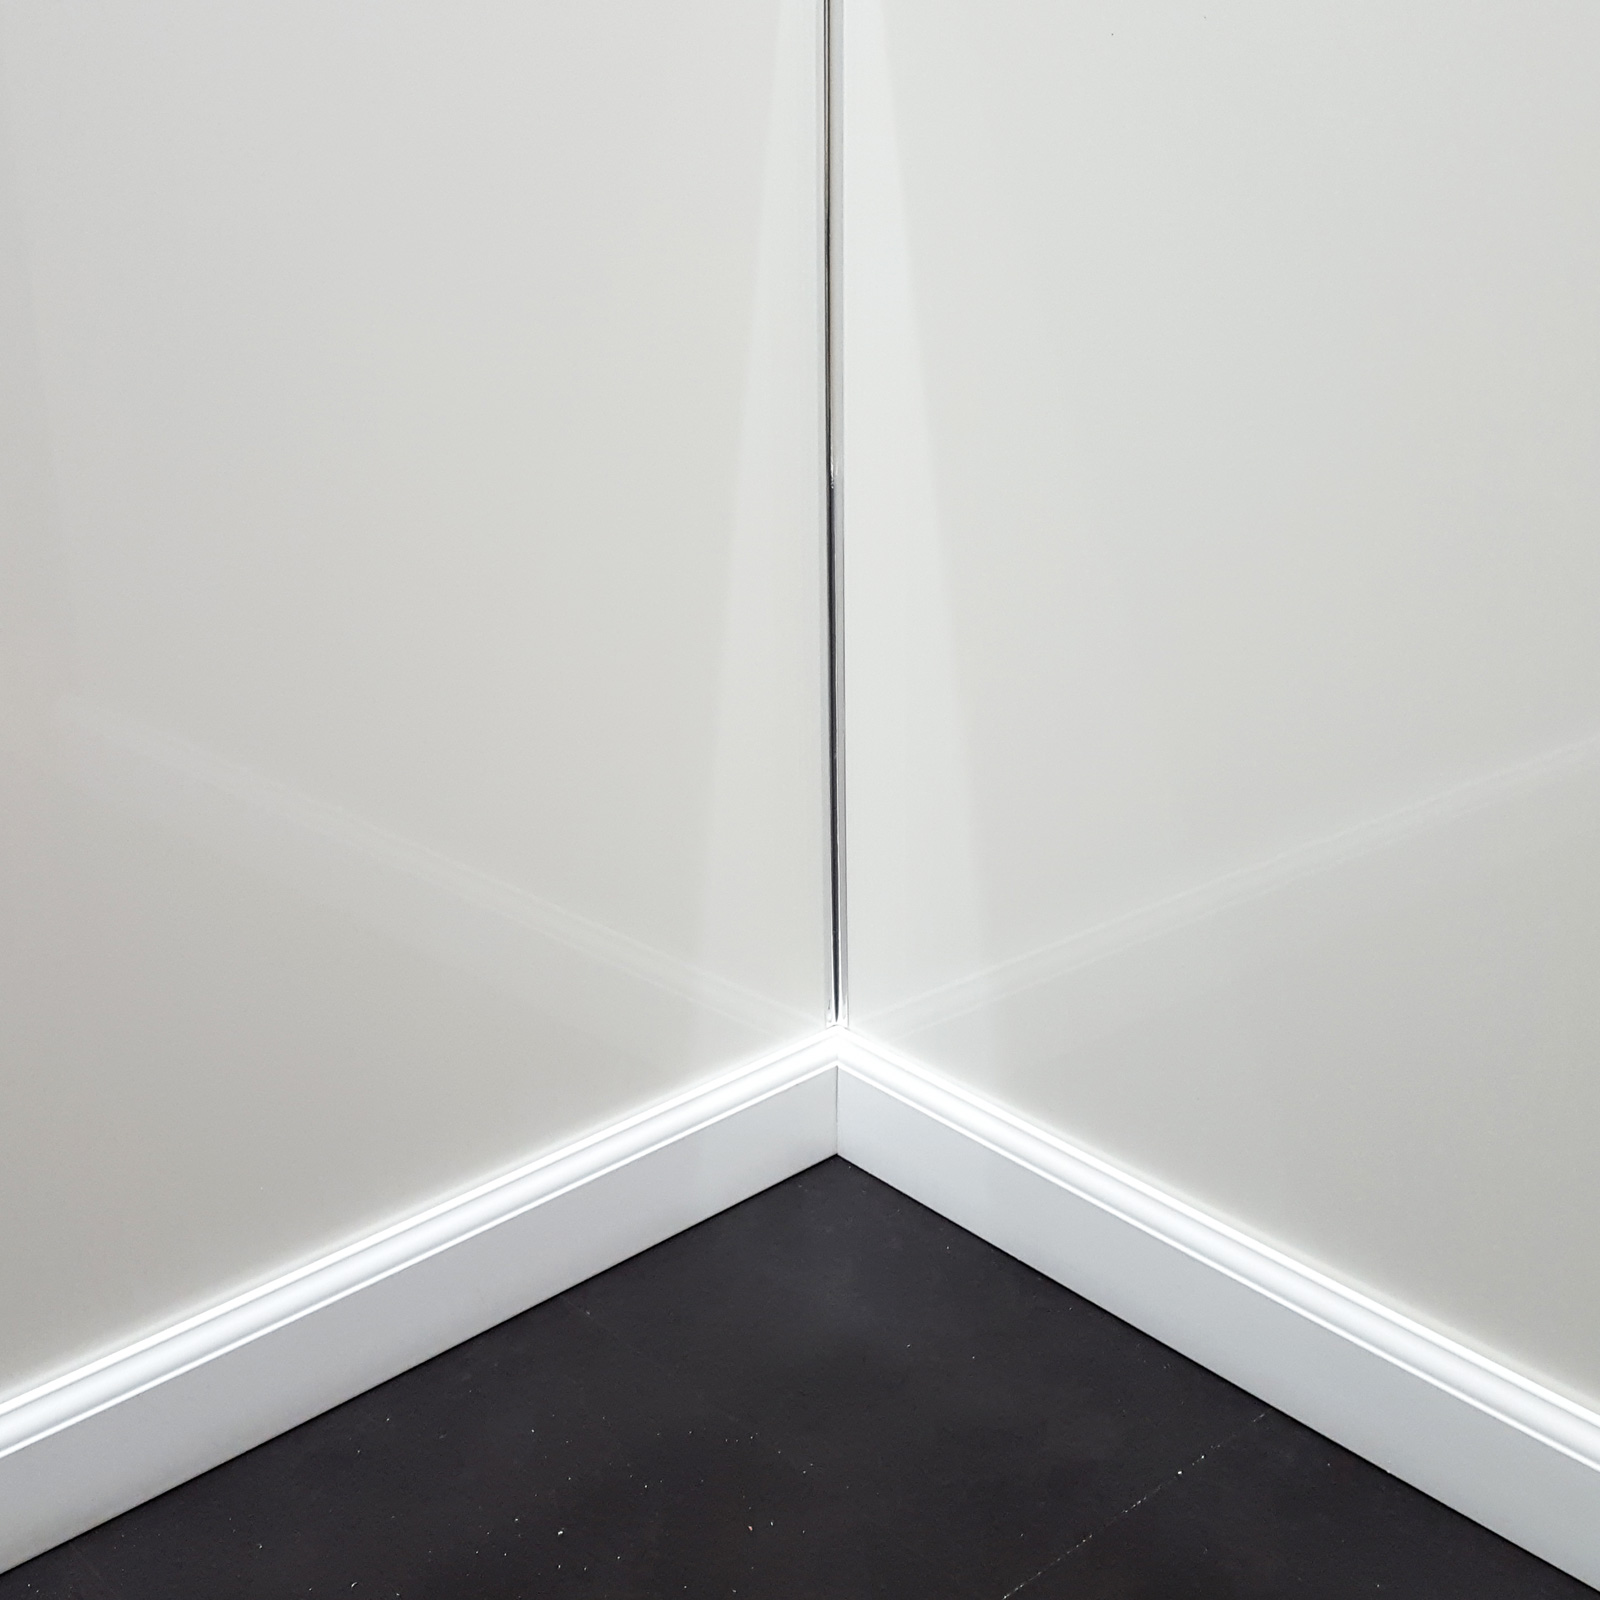 White Gloss Bathroom Fitted Furniture 1500mm: Aquamax Gloss White Metre Wide